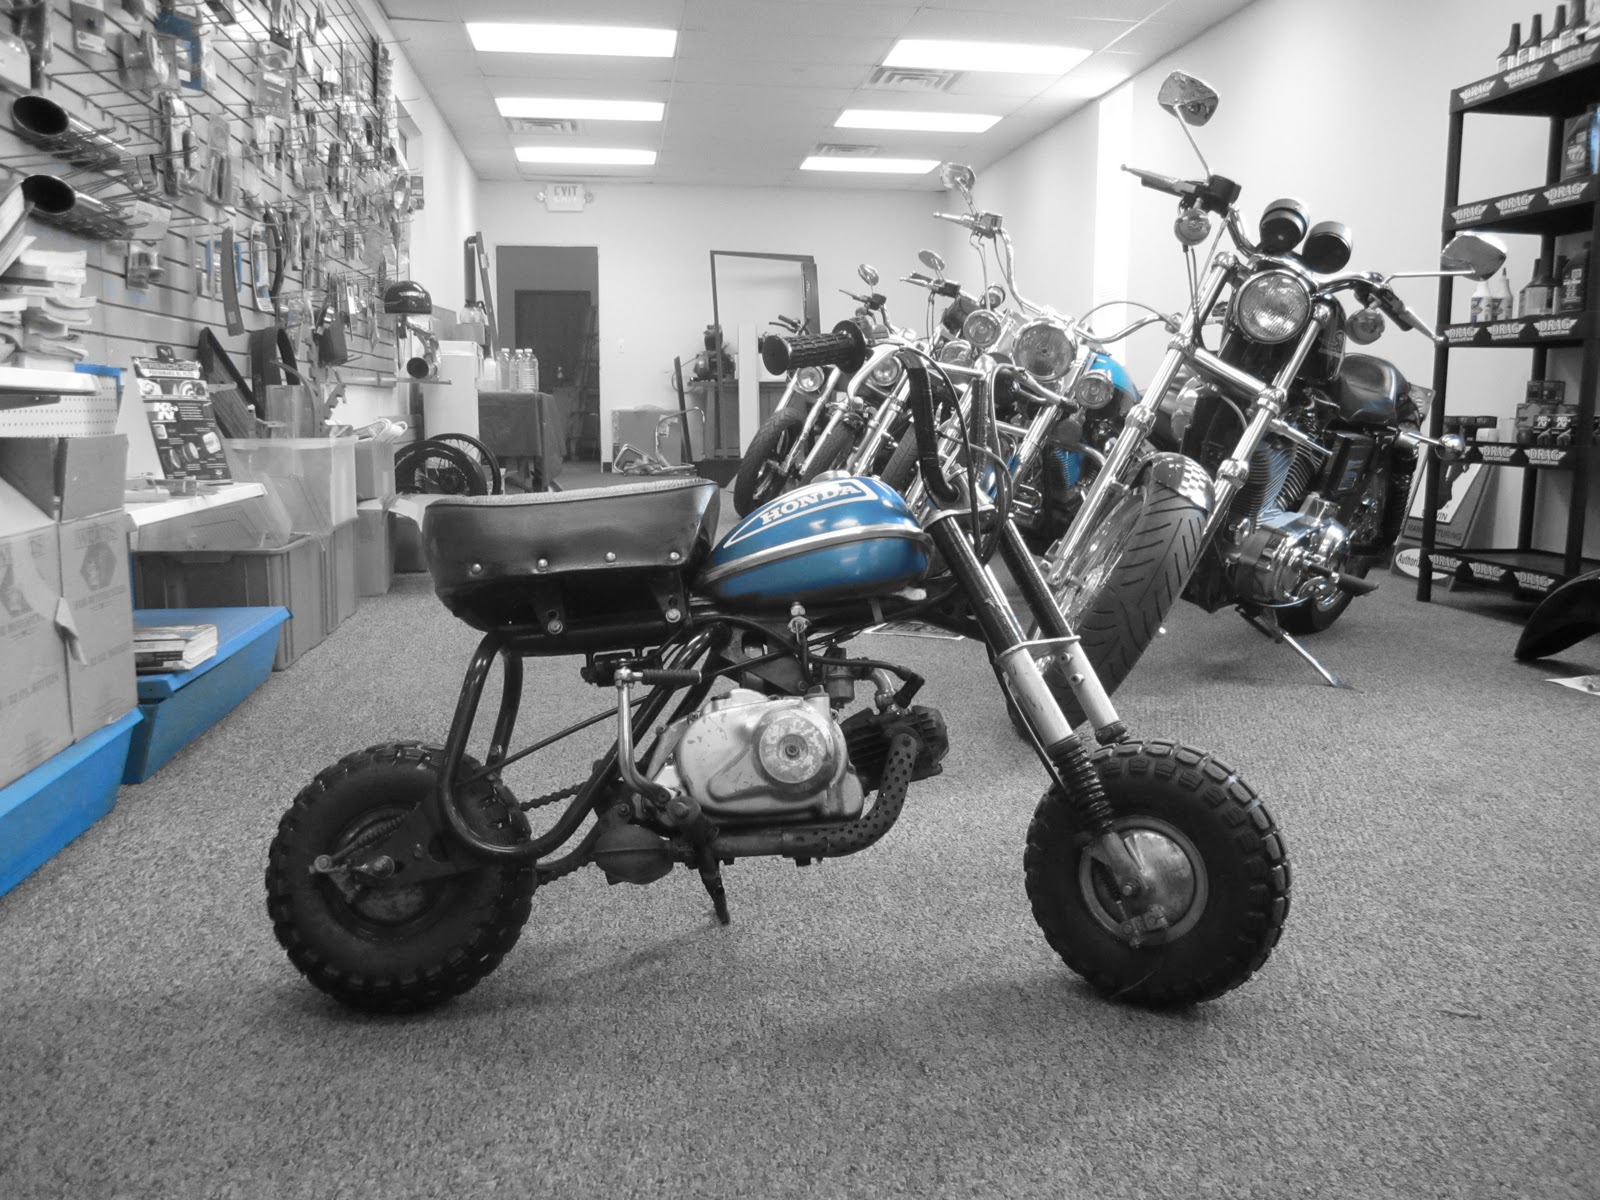 33 Craigslist Indianapolis Motorcycles By Owner